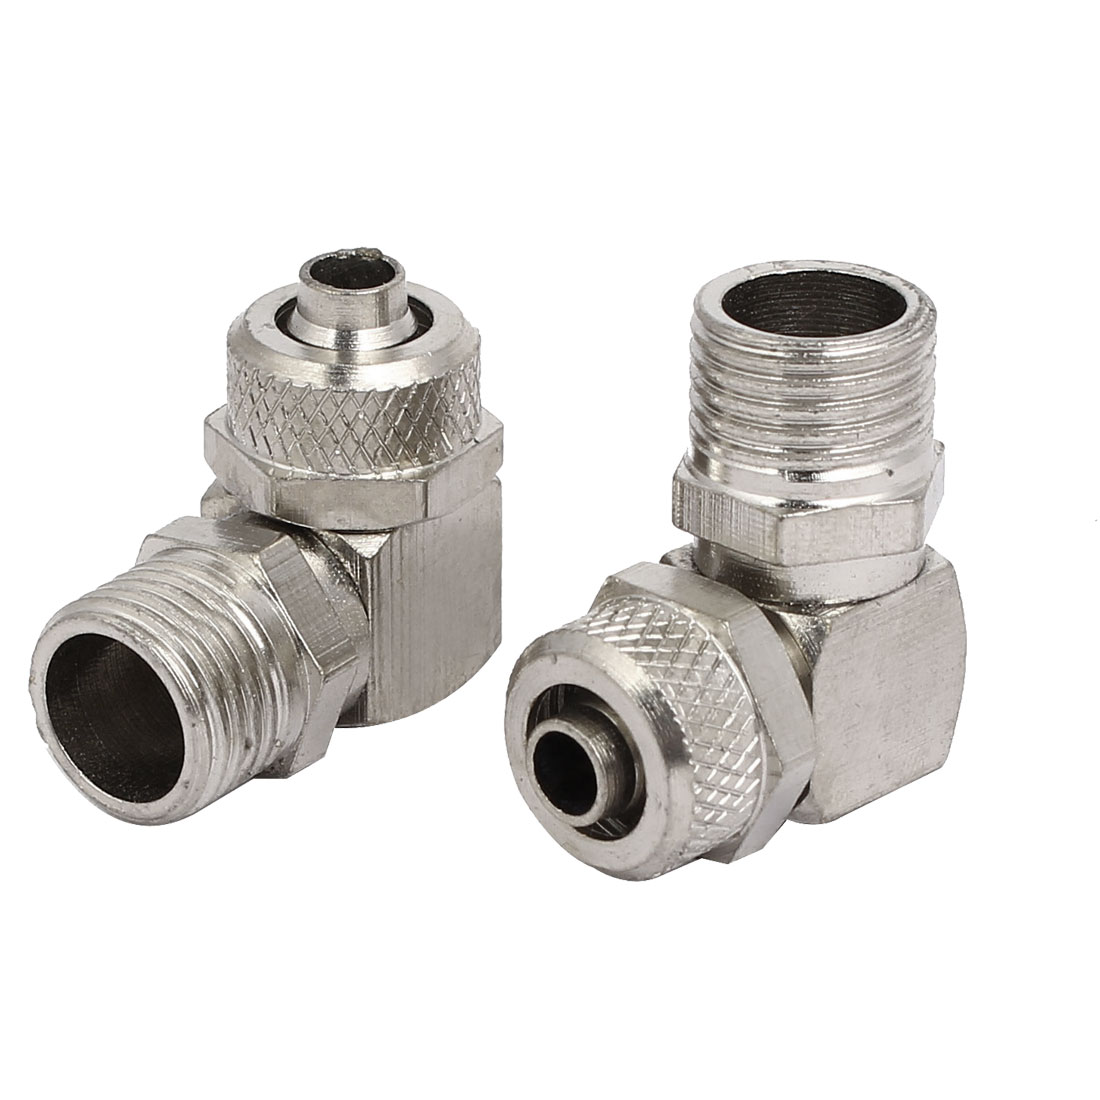 1/4BSP Male Thread L Shaped Pneumatic Air Quick Connecting Coupler 5pcs - image 2 of 4